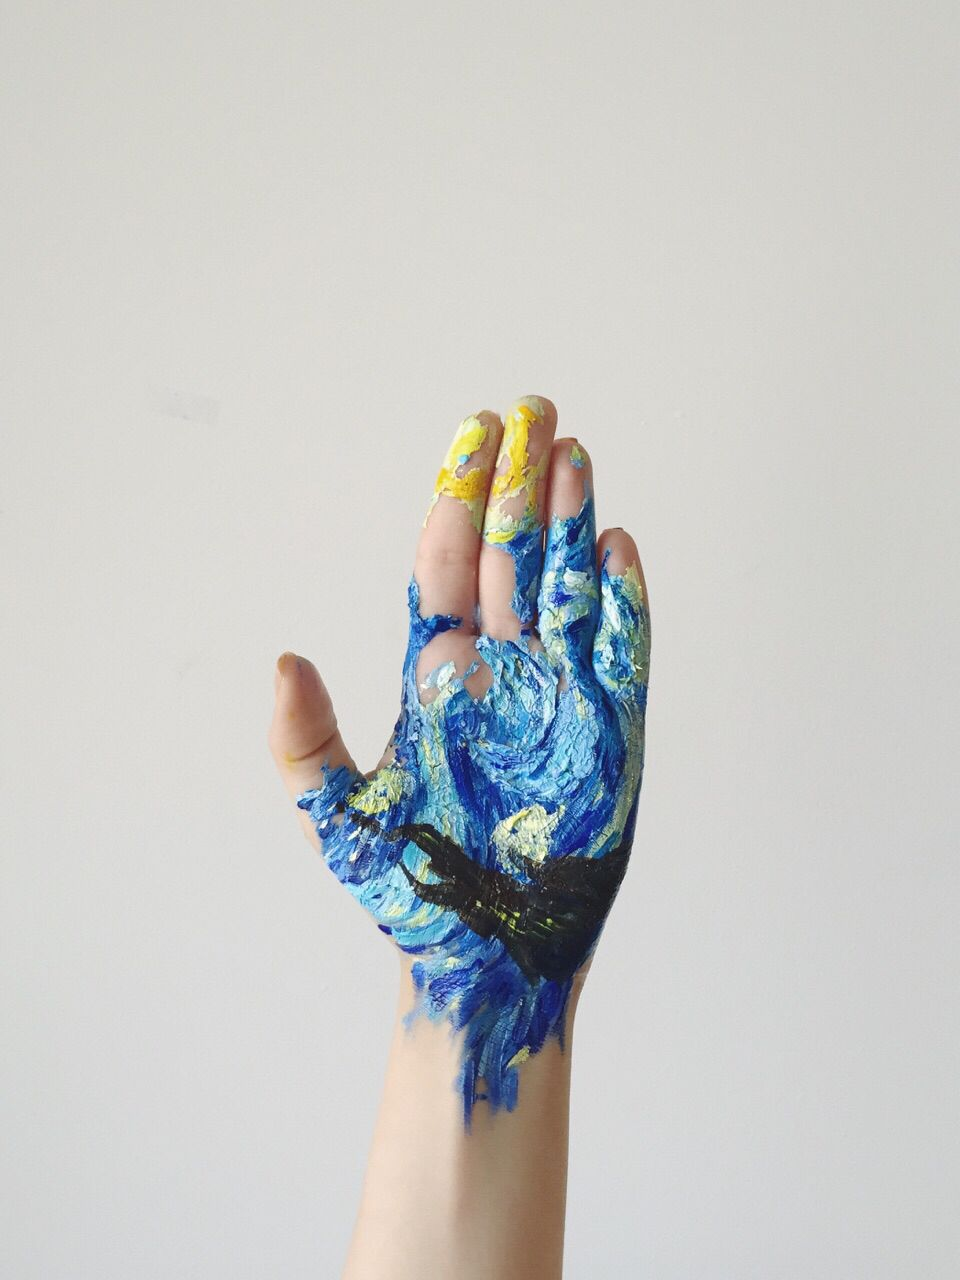 The Starry Night Vincent Van Gogh Hand Painting Artist Nora